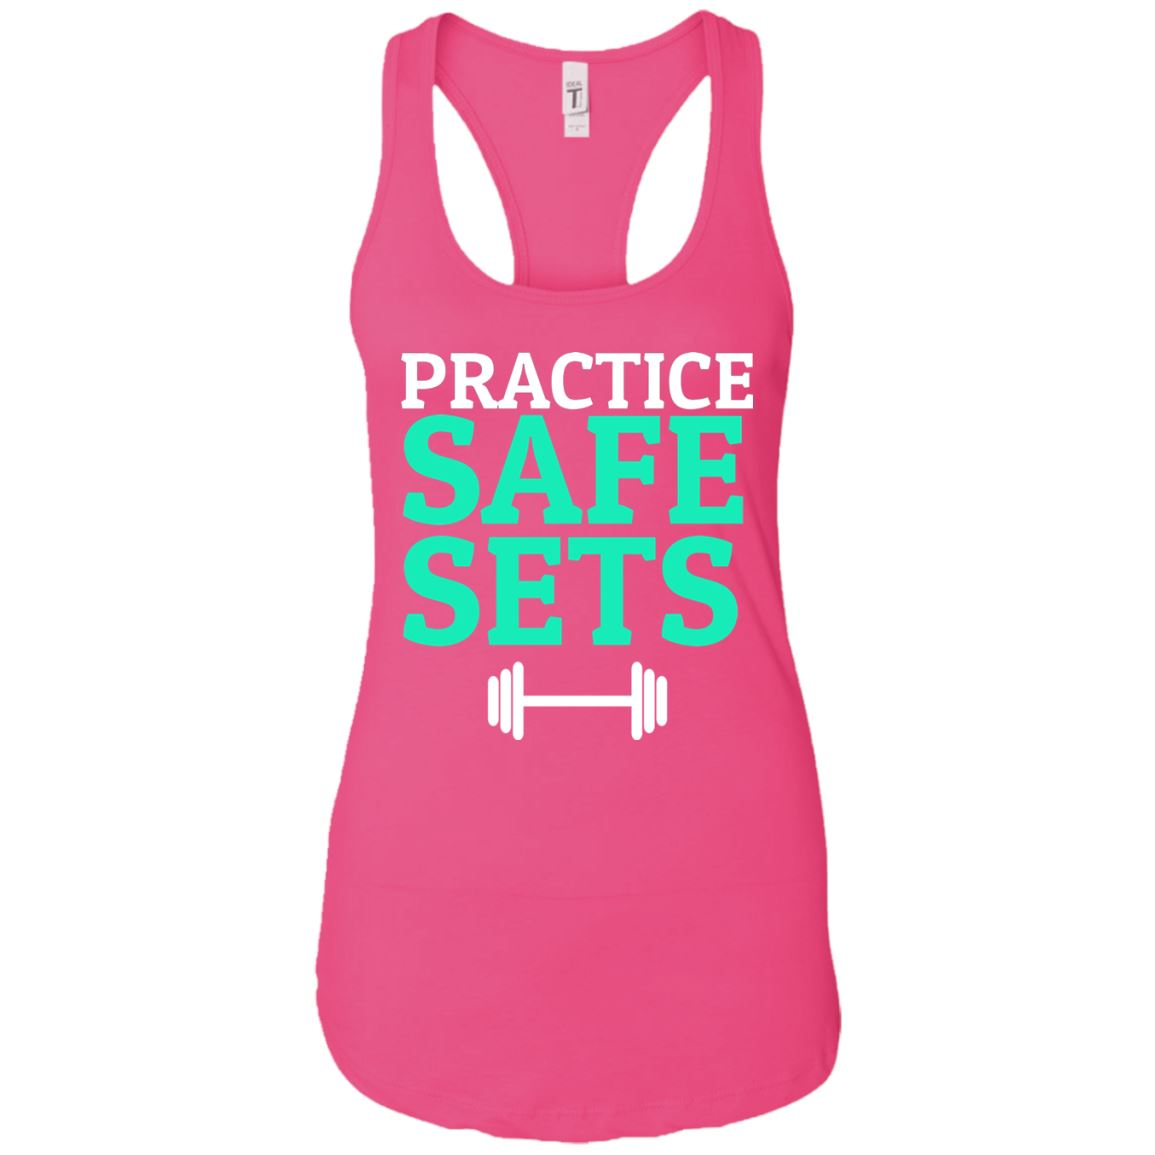 Practice Safe Sets Womens Racerback Tank T-Shirts Raspberry X-Small